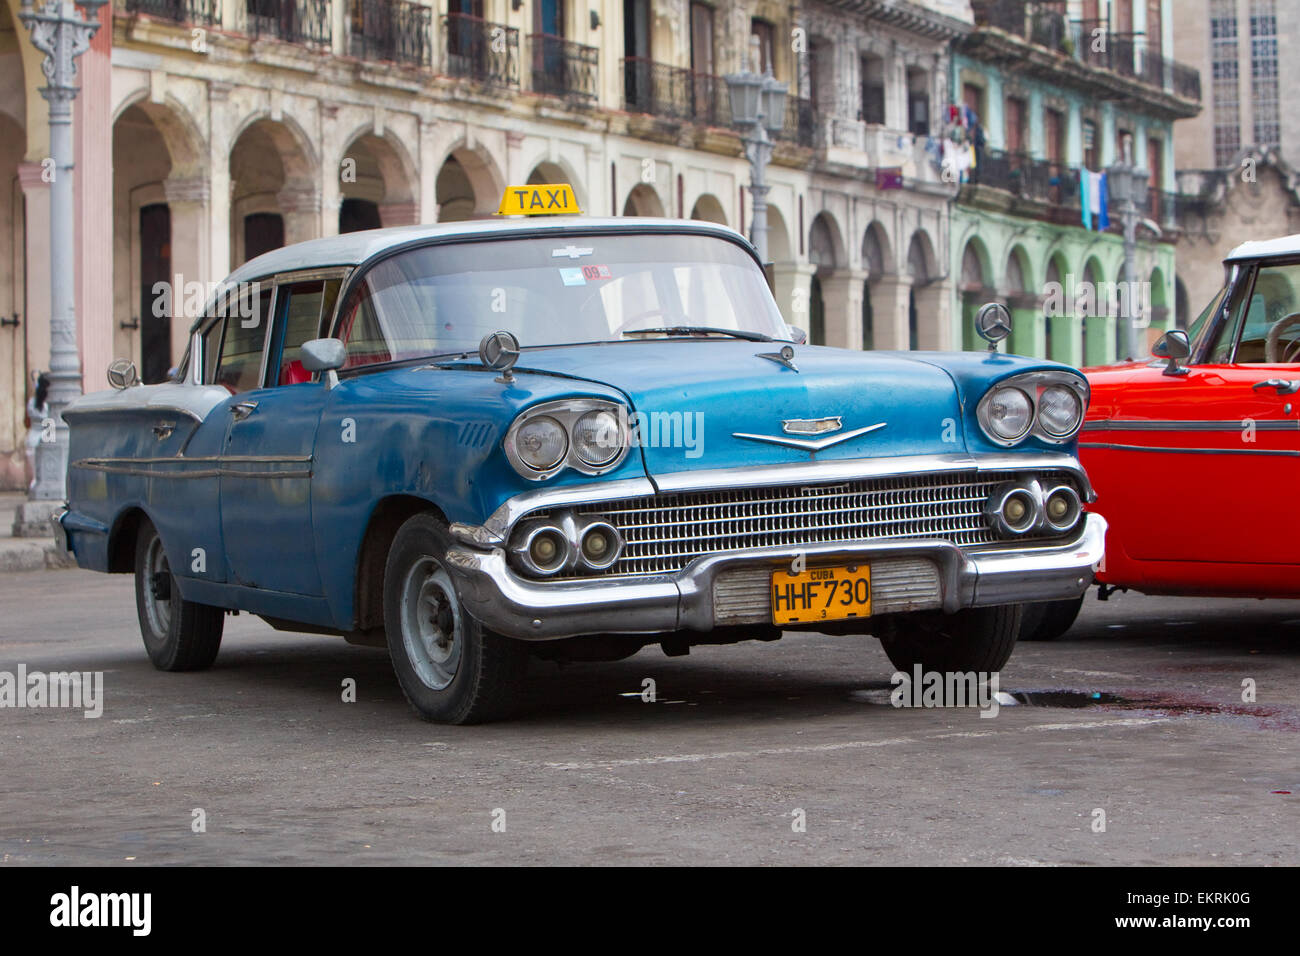 Classic American cars or automobiles from the 1920s and 1930s in Havana Cuba - Stock Image